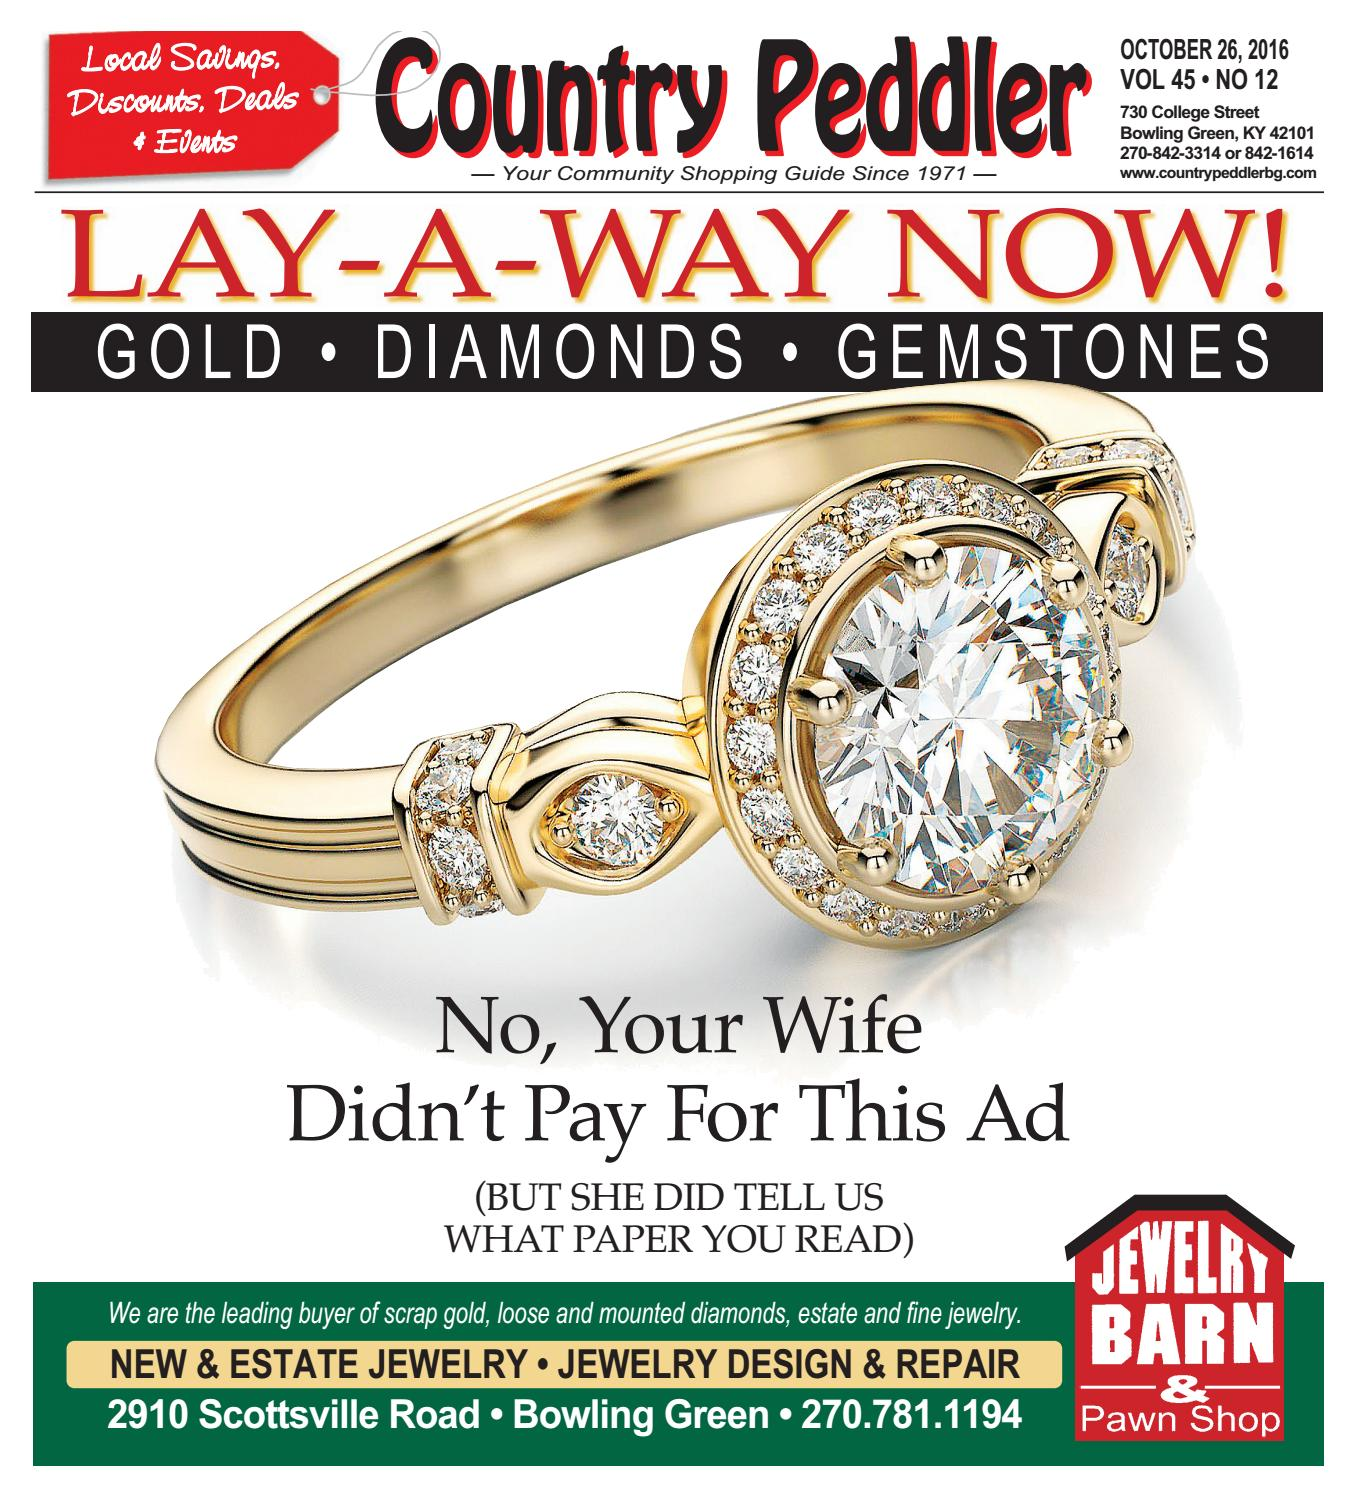 Country Peddler 10 26 16 By Country Peddler